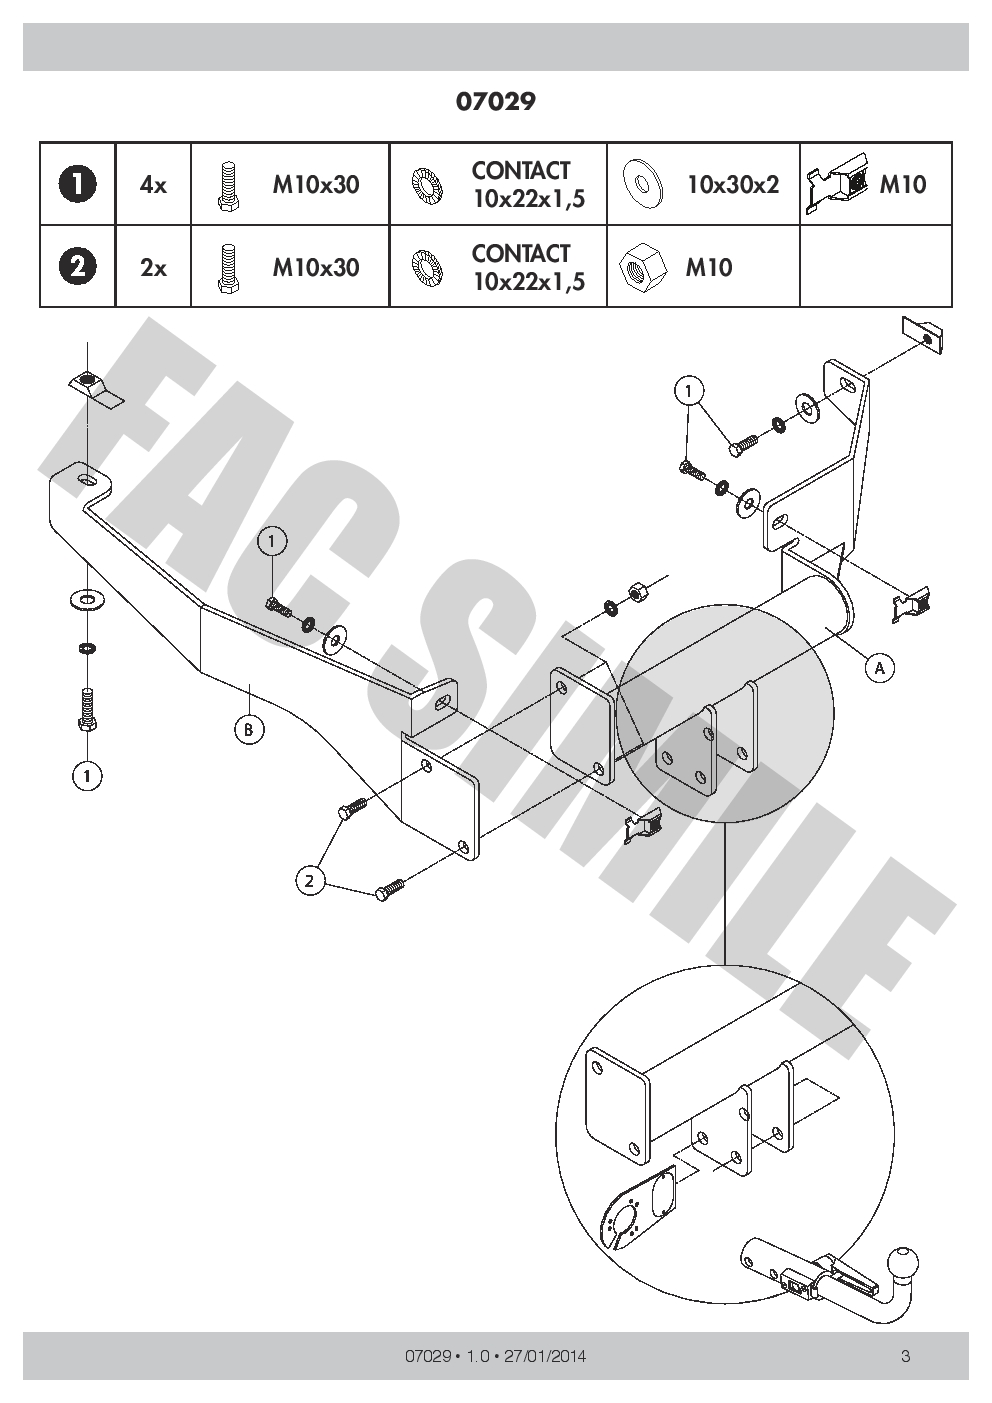 citroen saxo vts wiring diagram | wiring library citroen picasso towbar wiring diagram